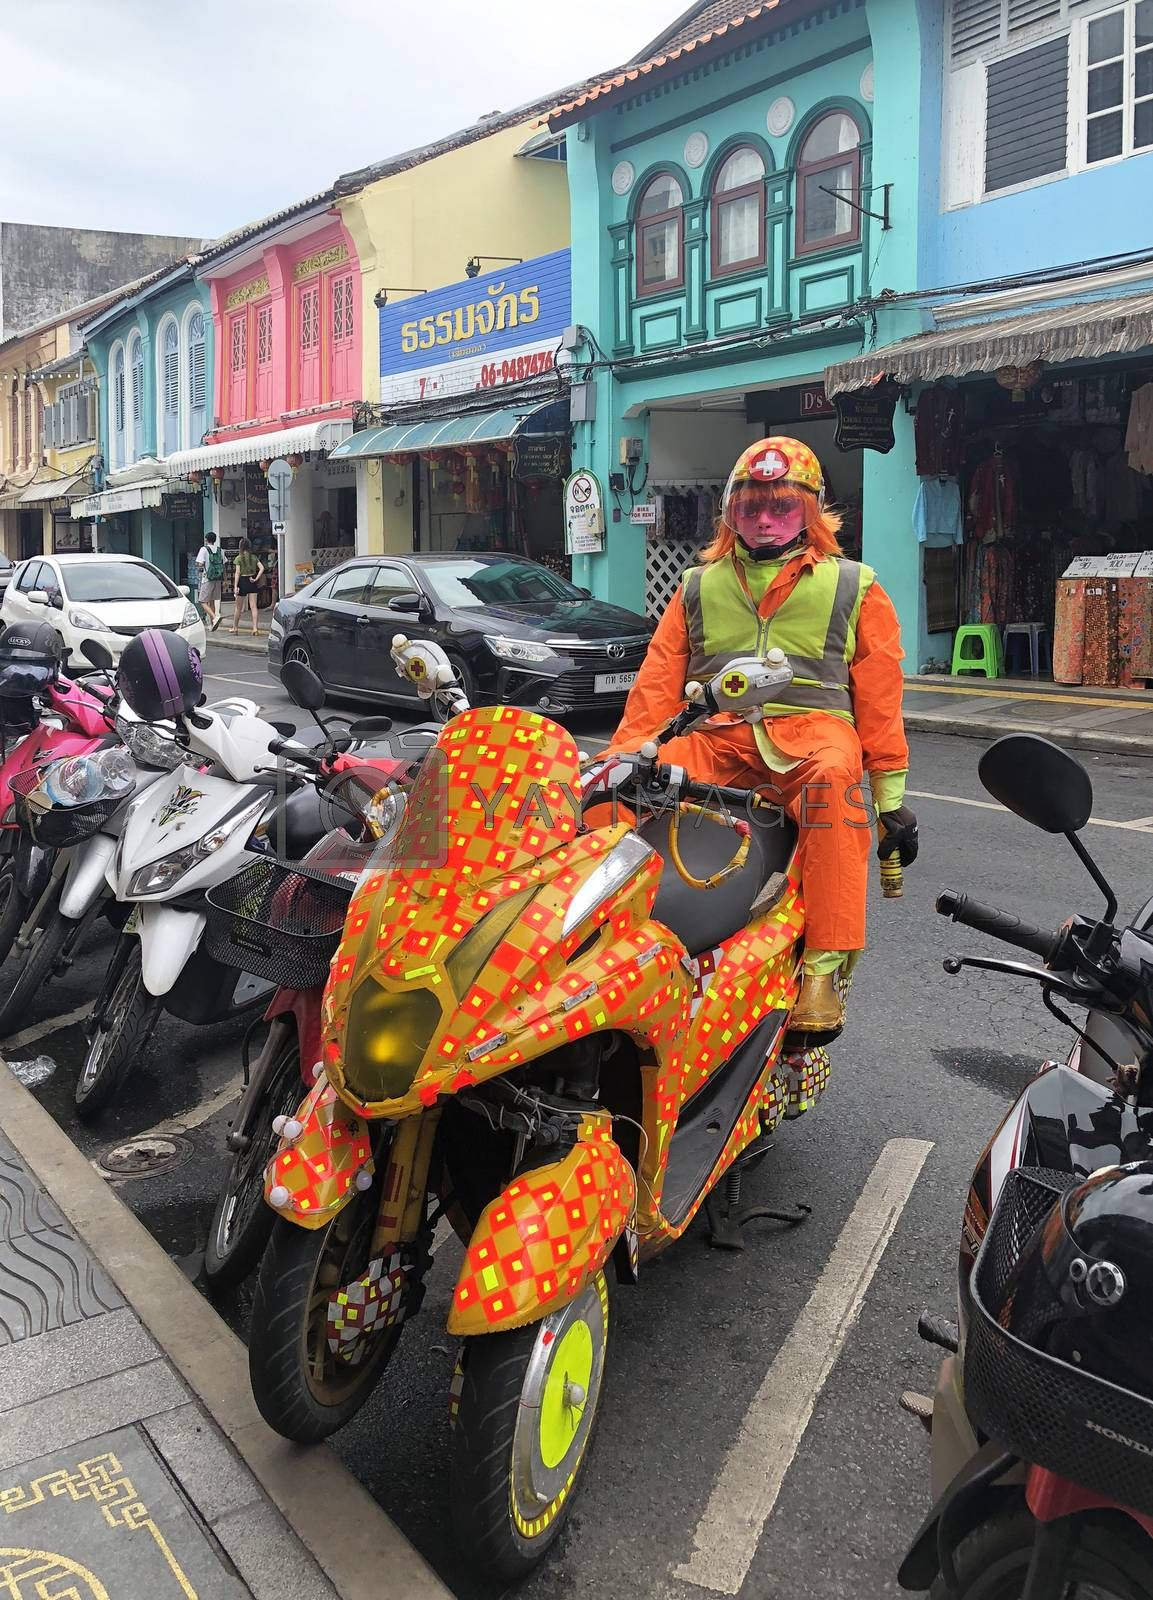 Phuket Thailand 30 May 2018 : Colorful Robot Security in Phuket Walking Sreet at daylight in Phuket Old Town. View of the street food market at dusk with a crowd of locals and tourists.